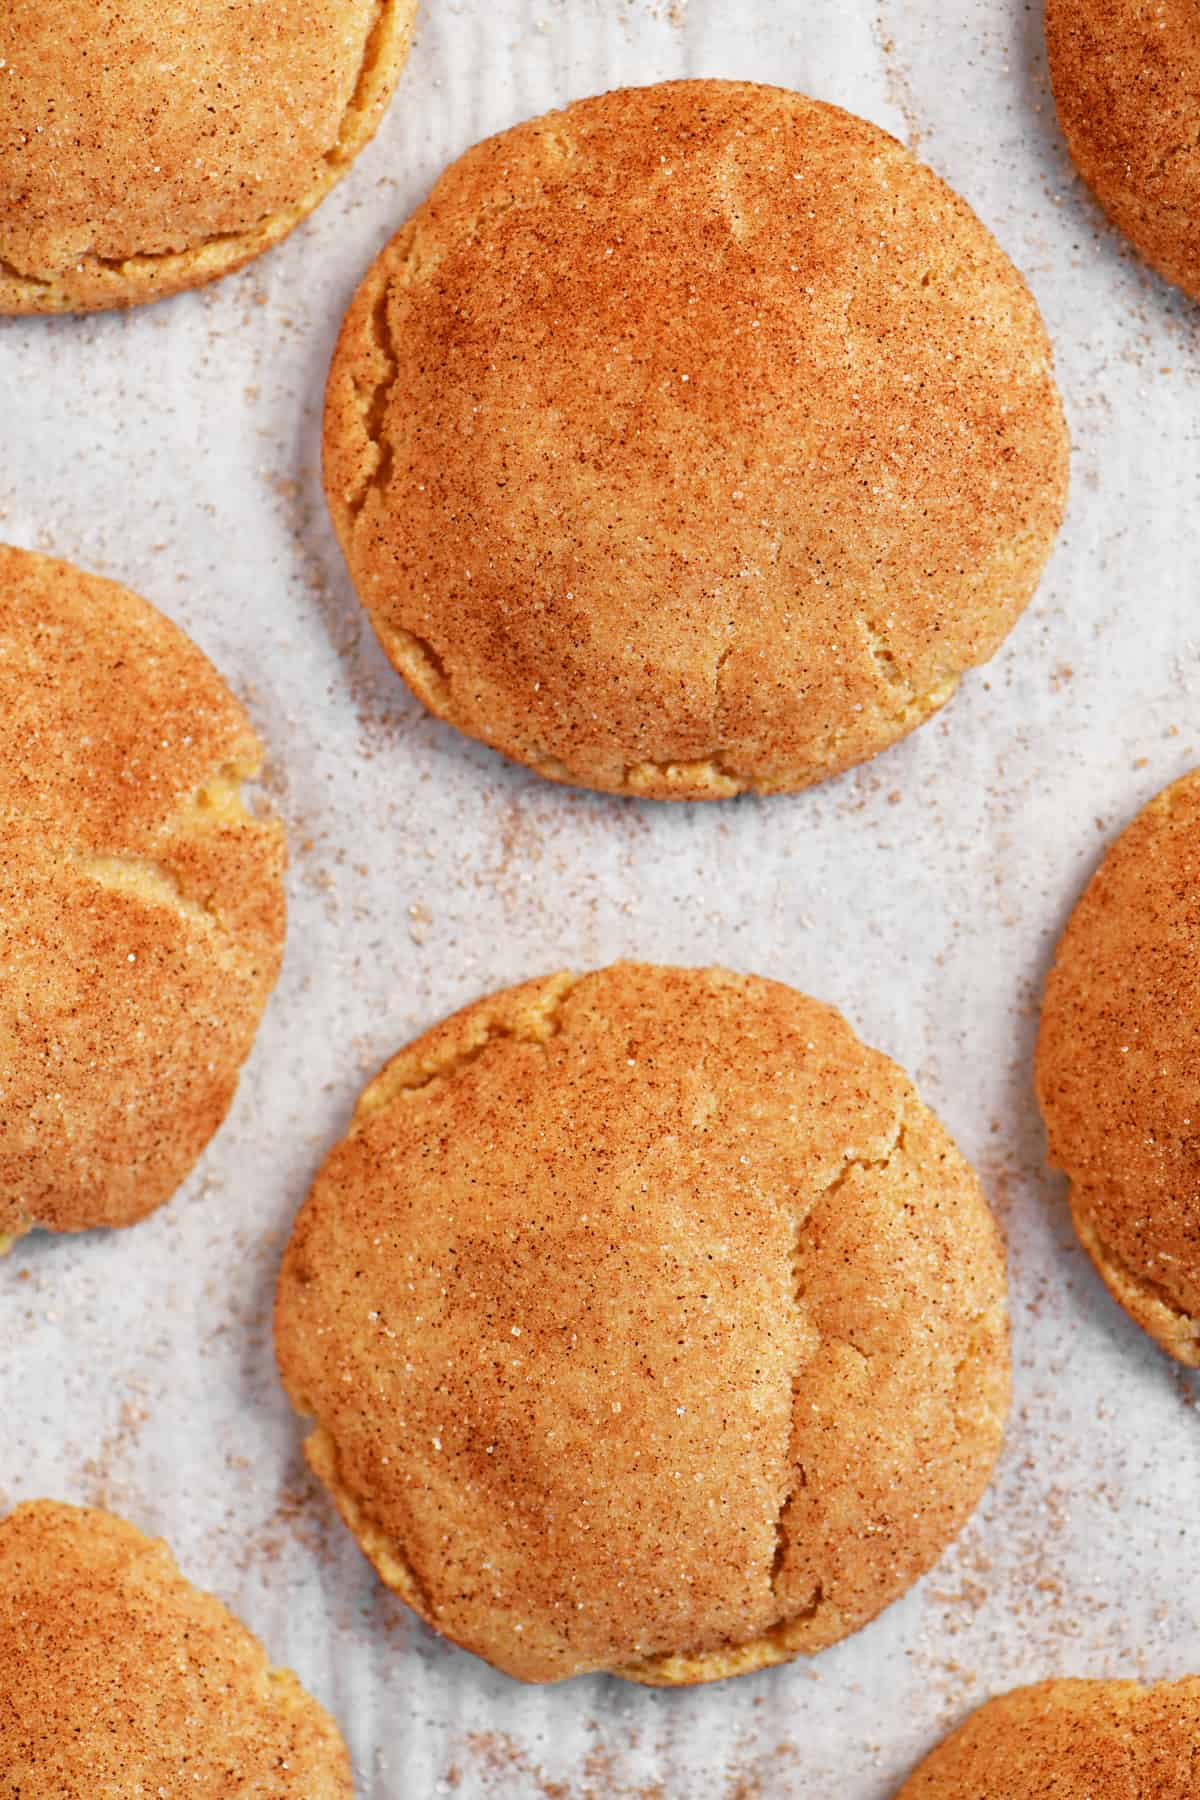 a close-up photo of the snickerdoodles